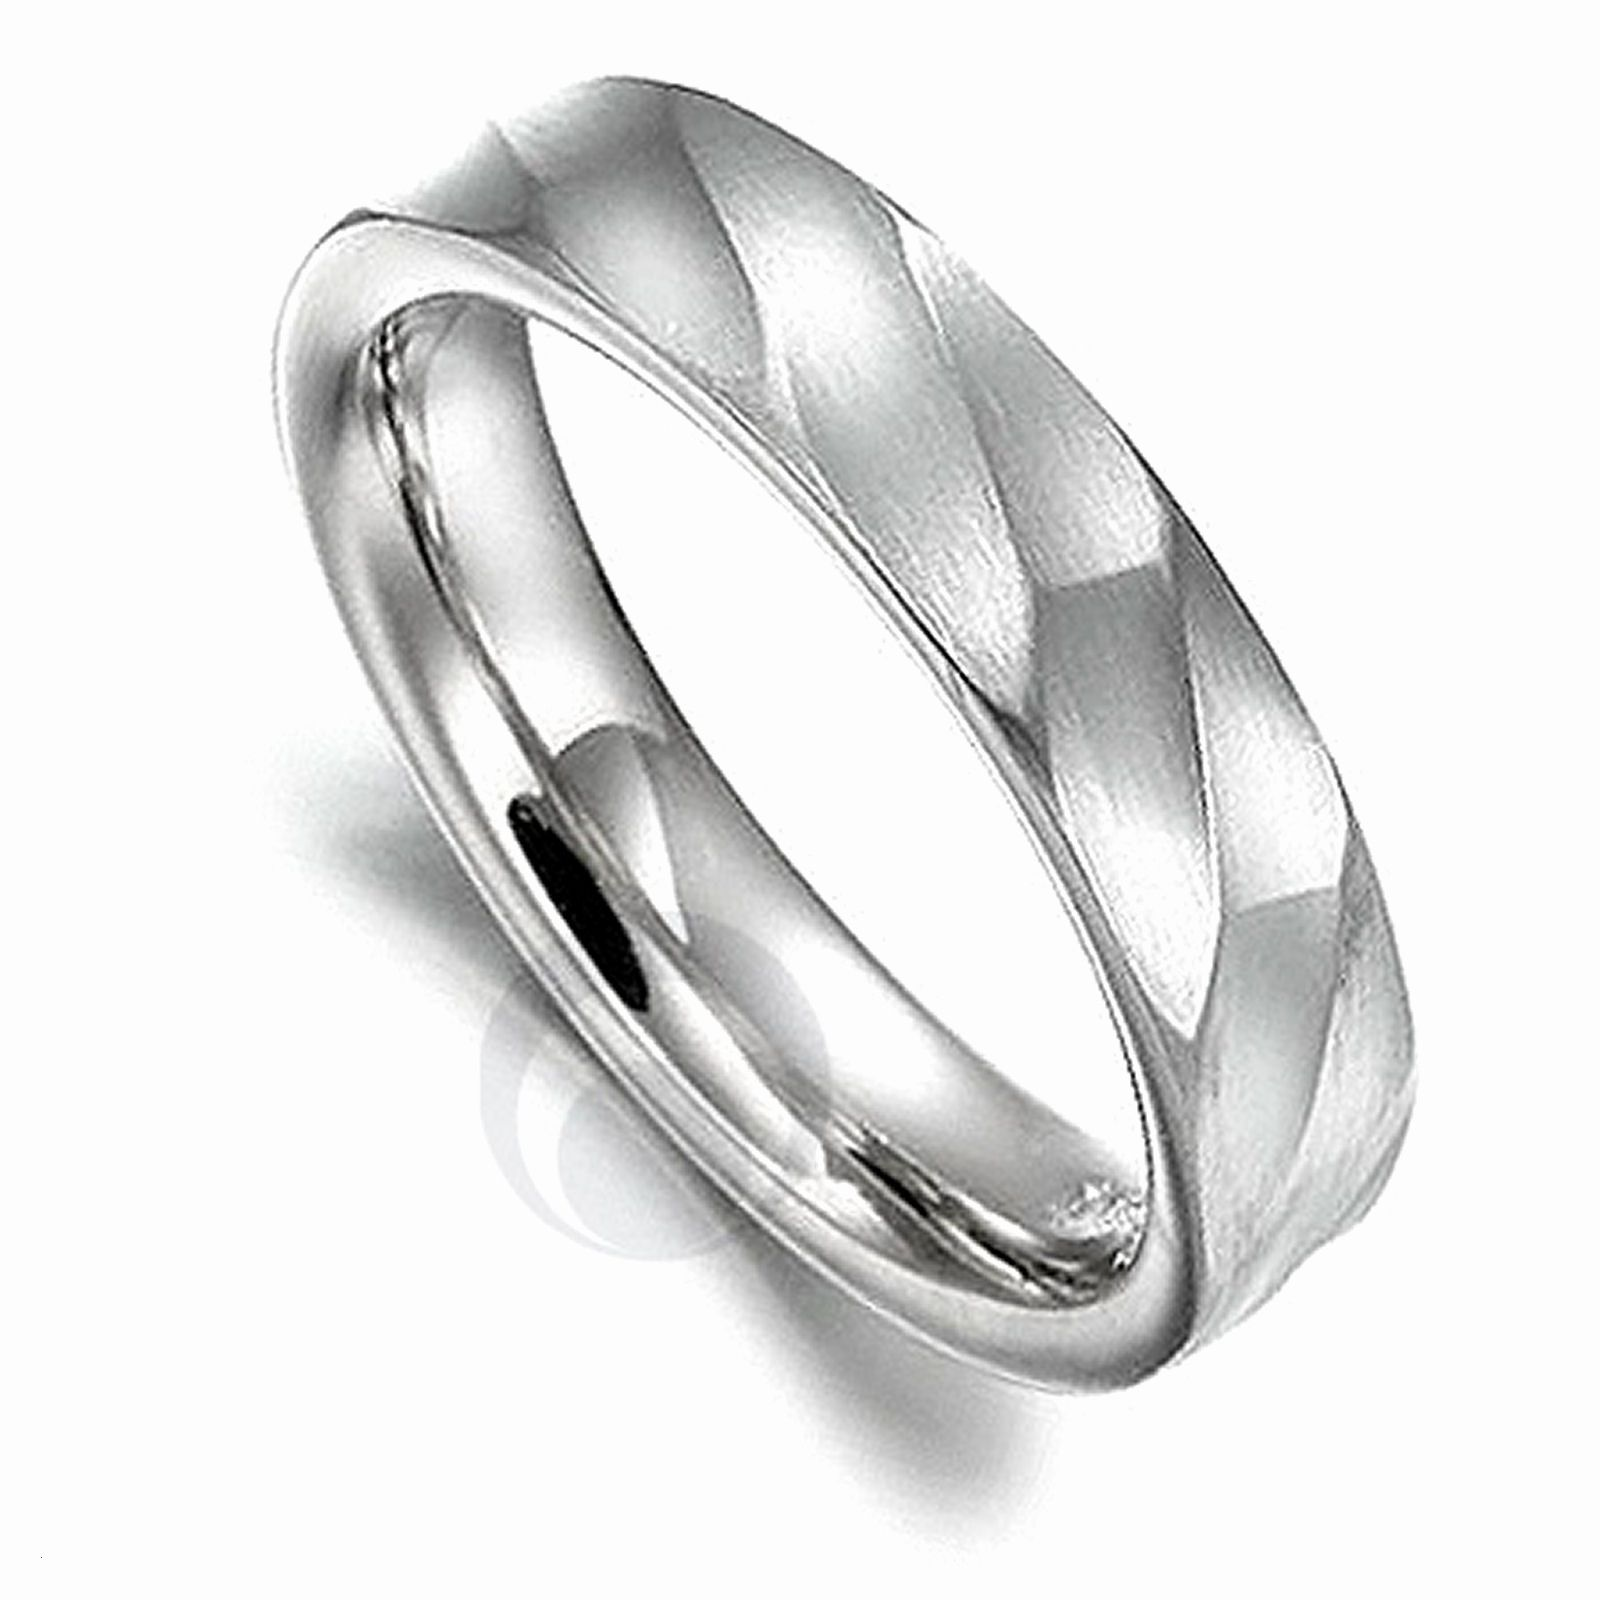 201 World Most Expensive Wedding Ring Check more at https